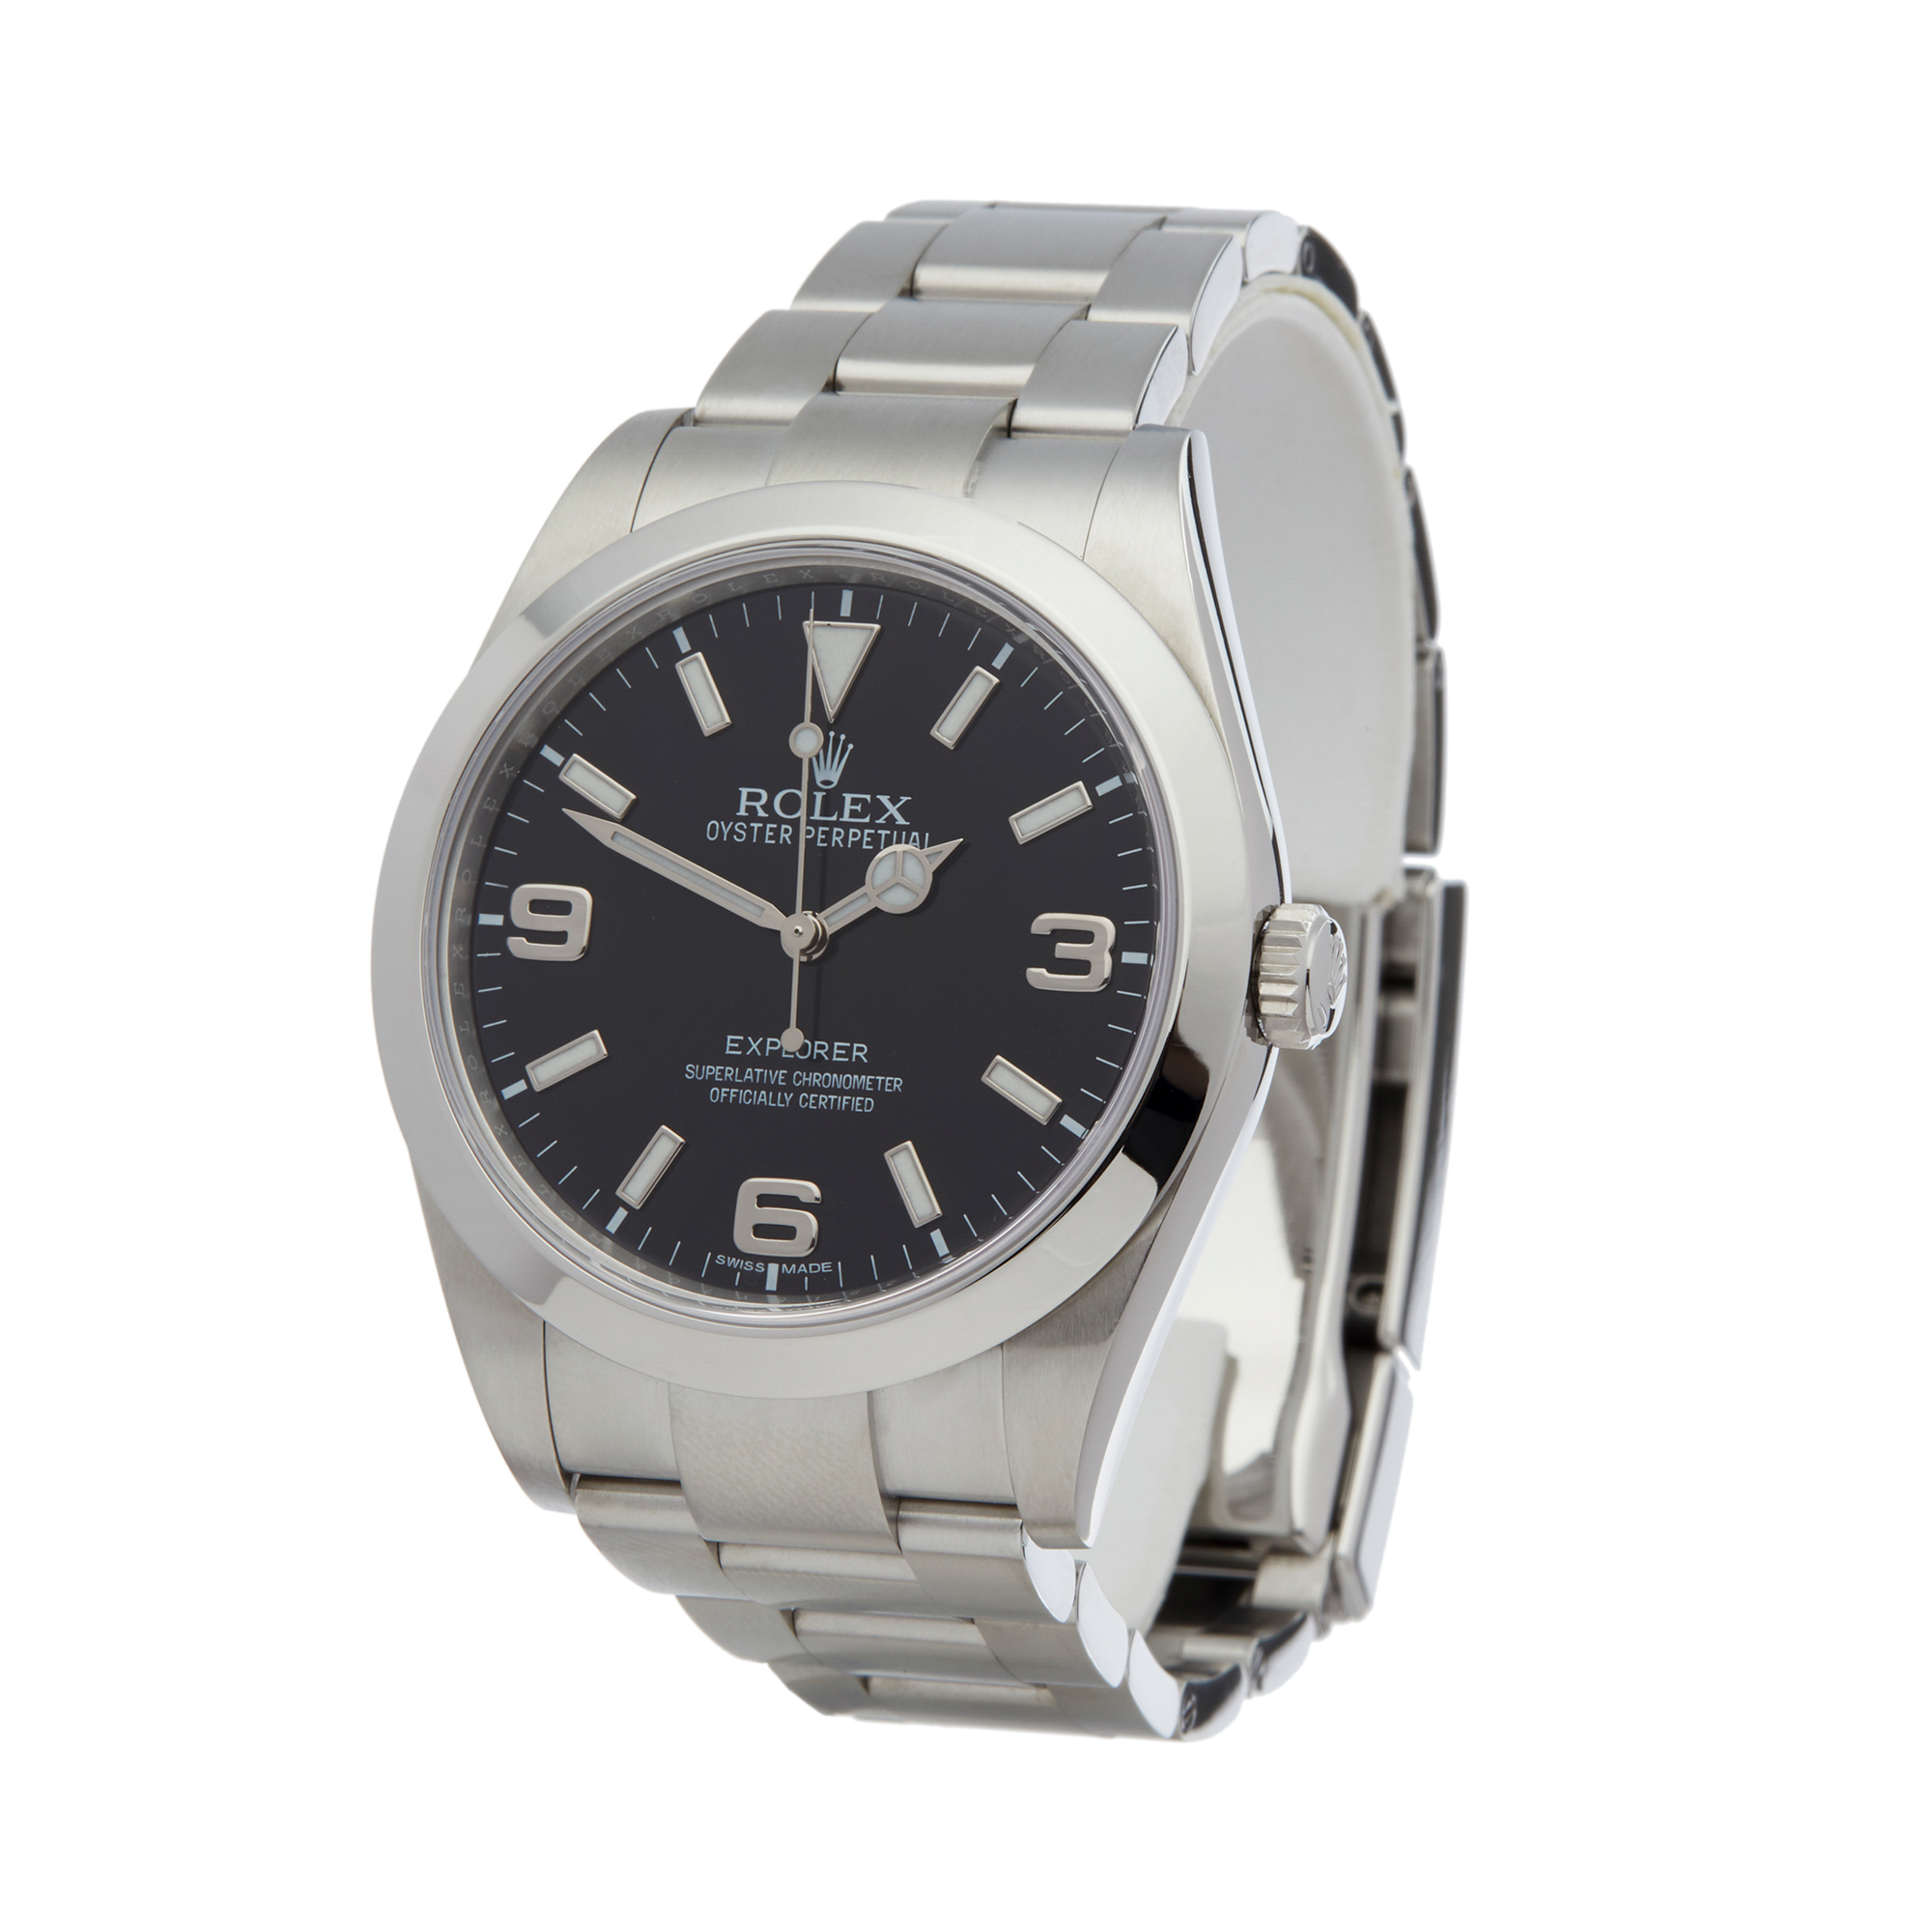 7d8e29bd6ce Details about ROLEX EXPLORER I STAINLESS STEEL WATCH 214270 W5847